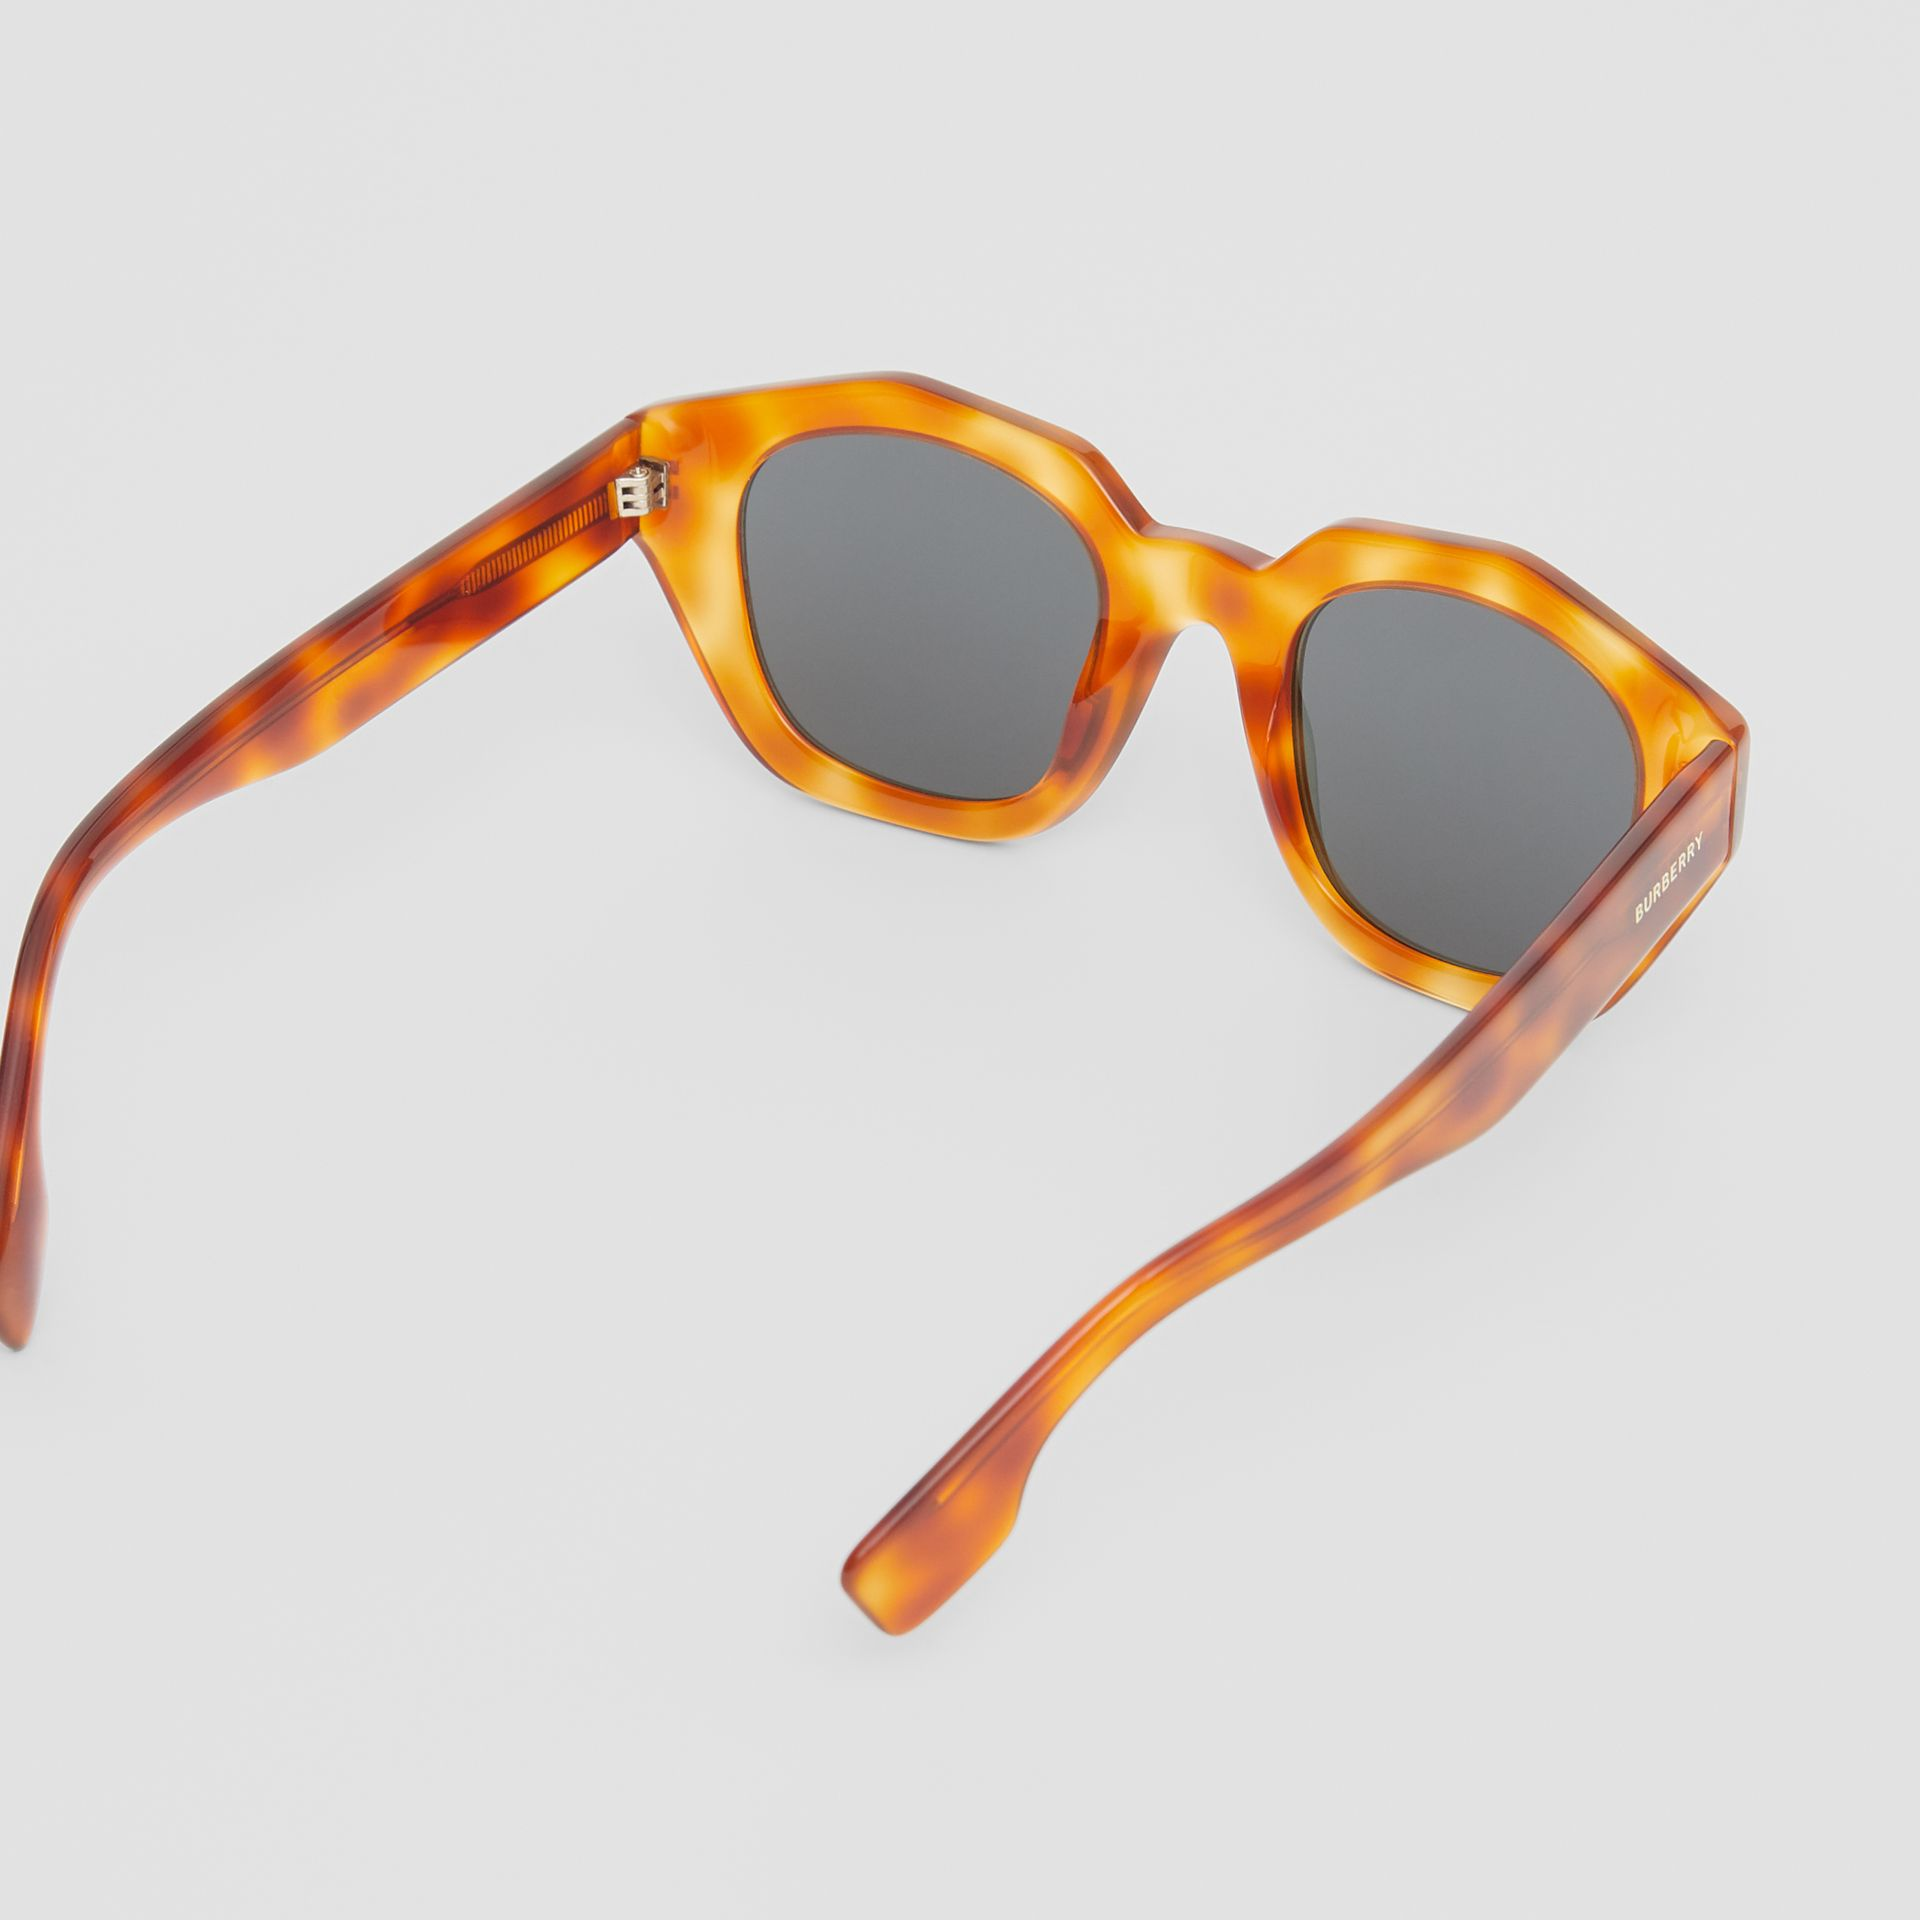 Geometric Frame Sunglasses in Tortoiseshell Amber - Women | Burberry Singapore - gallery image 4